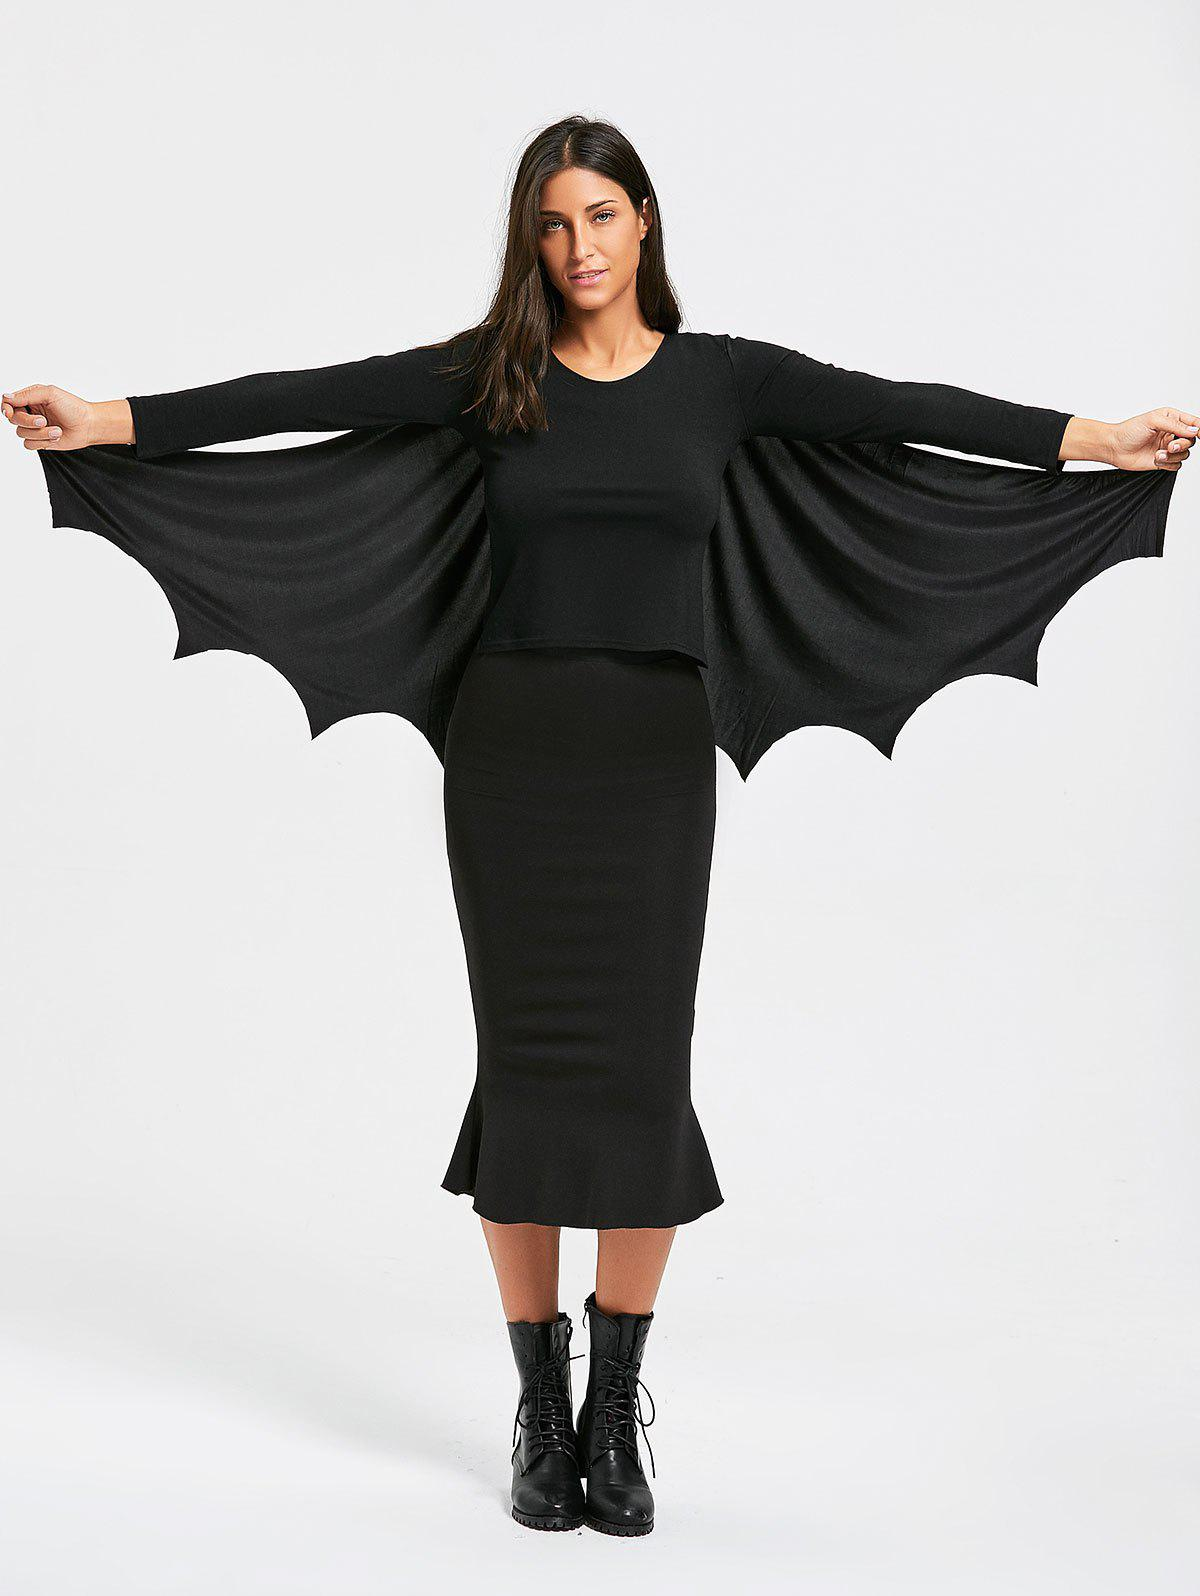 Chic Halloween Batwing Cosplay Costume Cape